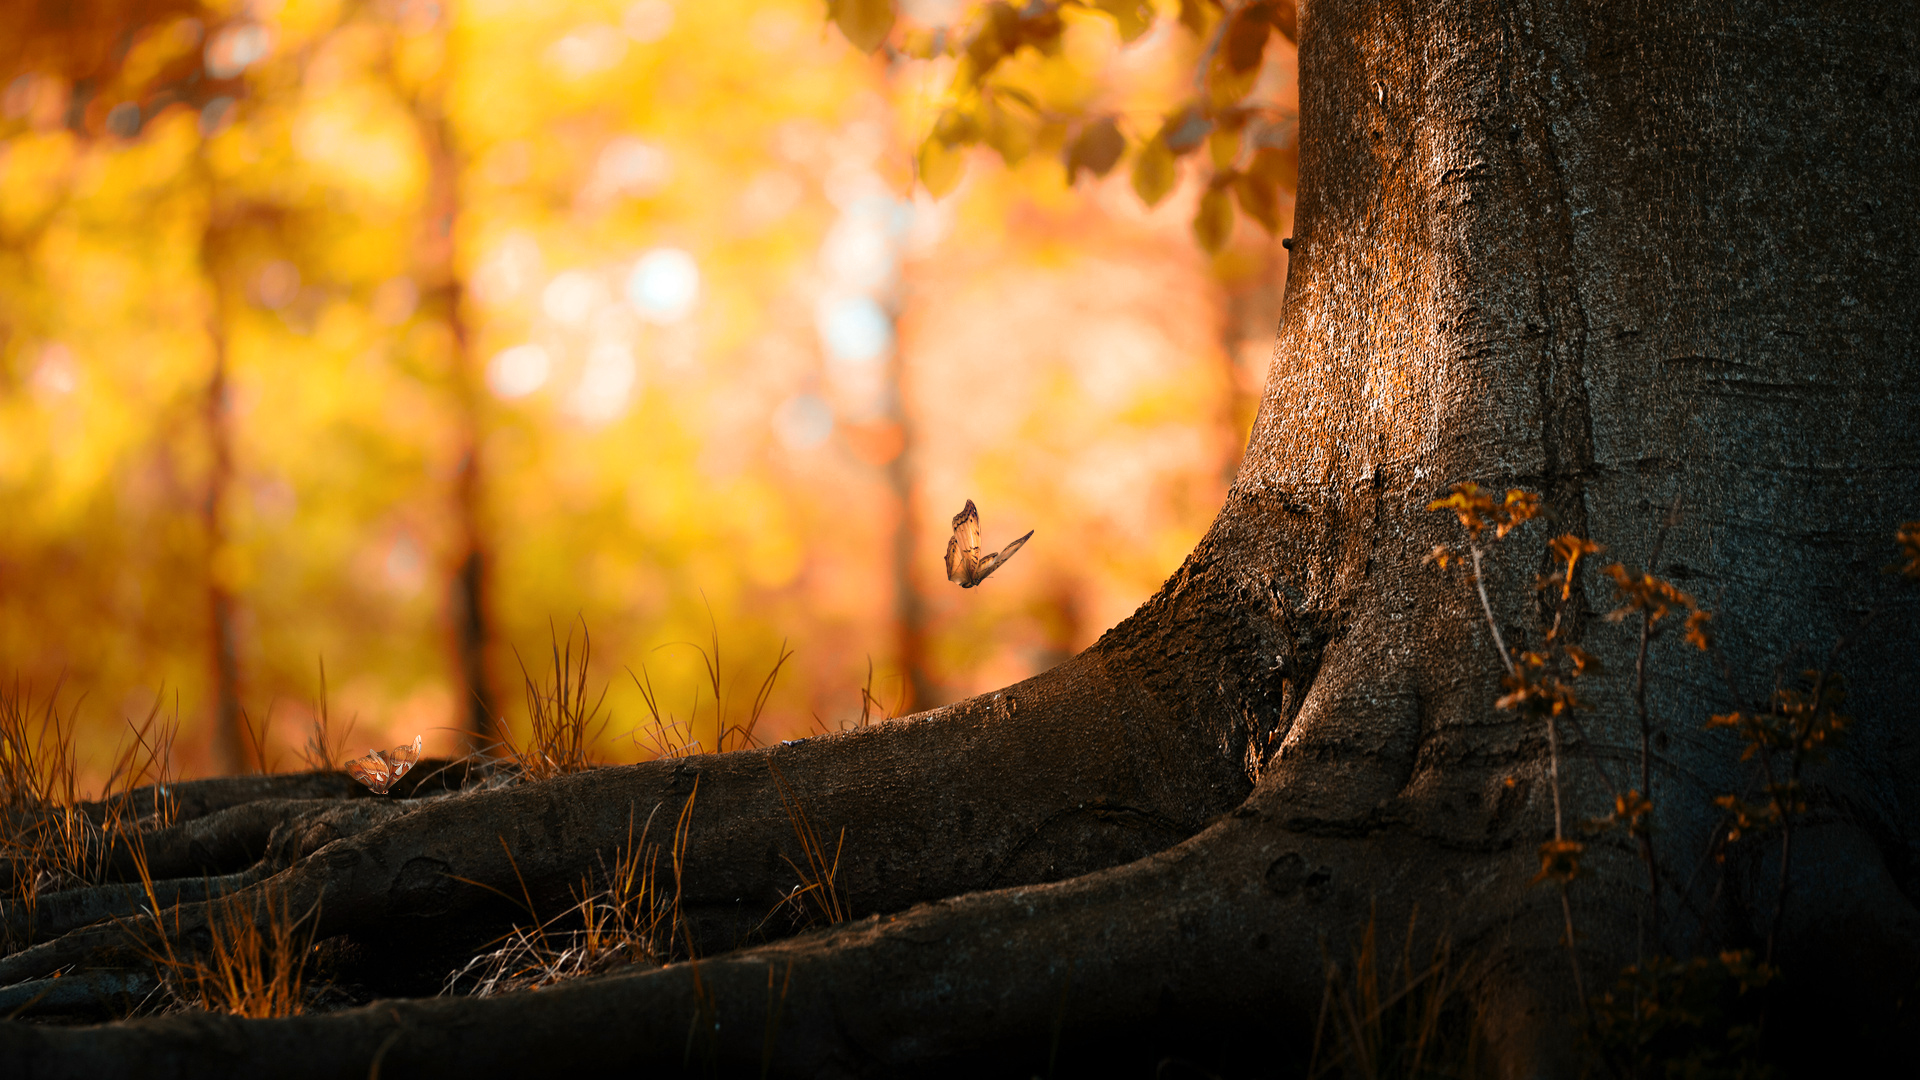 3d Hd Wallpaper 1366x768: Butterfly Wood Beautiful Colored High Definition Wallpapers Hd 1920x1080px